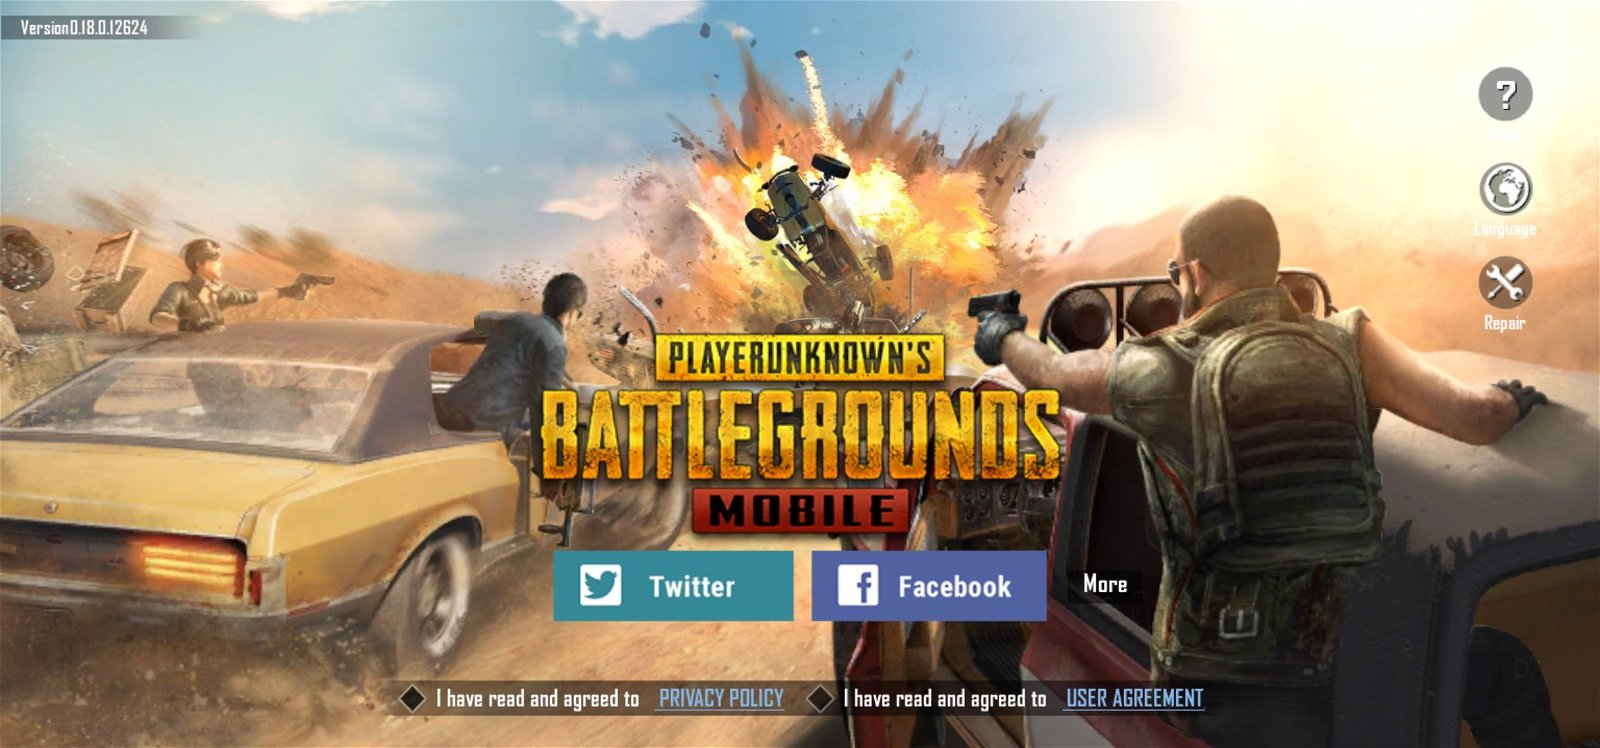 How to Install PUBG Mobile on Huawei Devices   No Google Services Needed 1